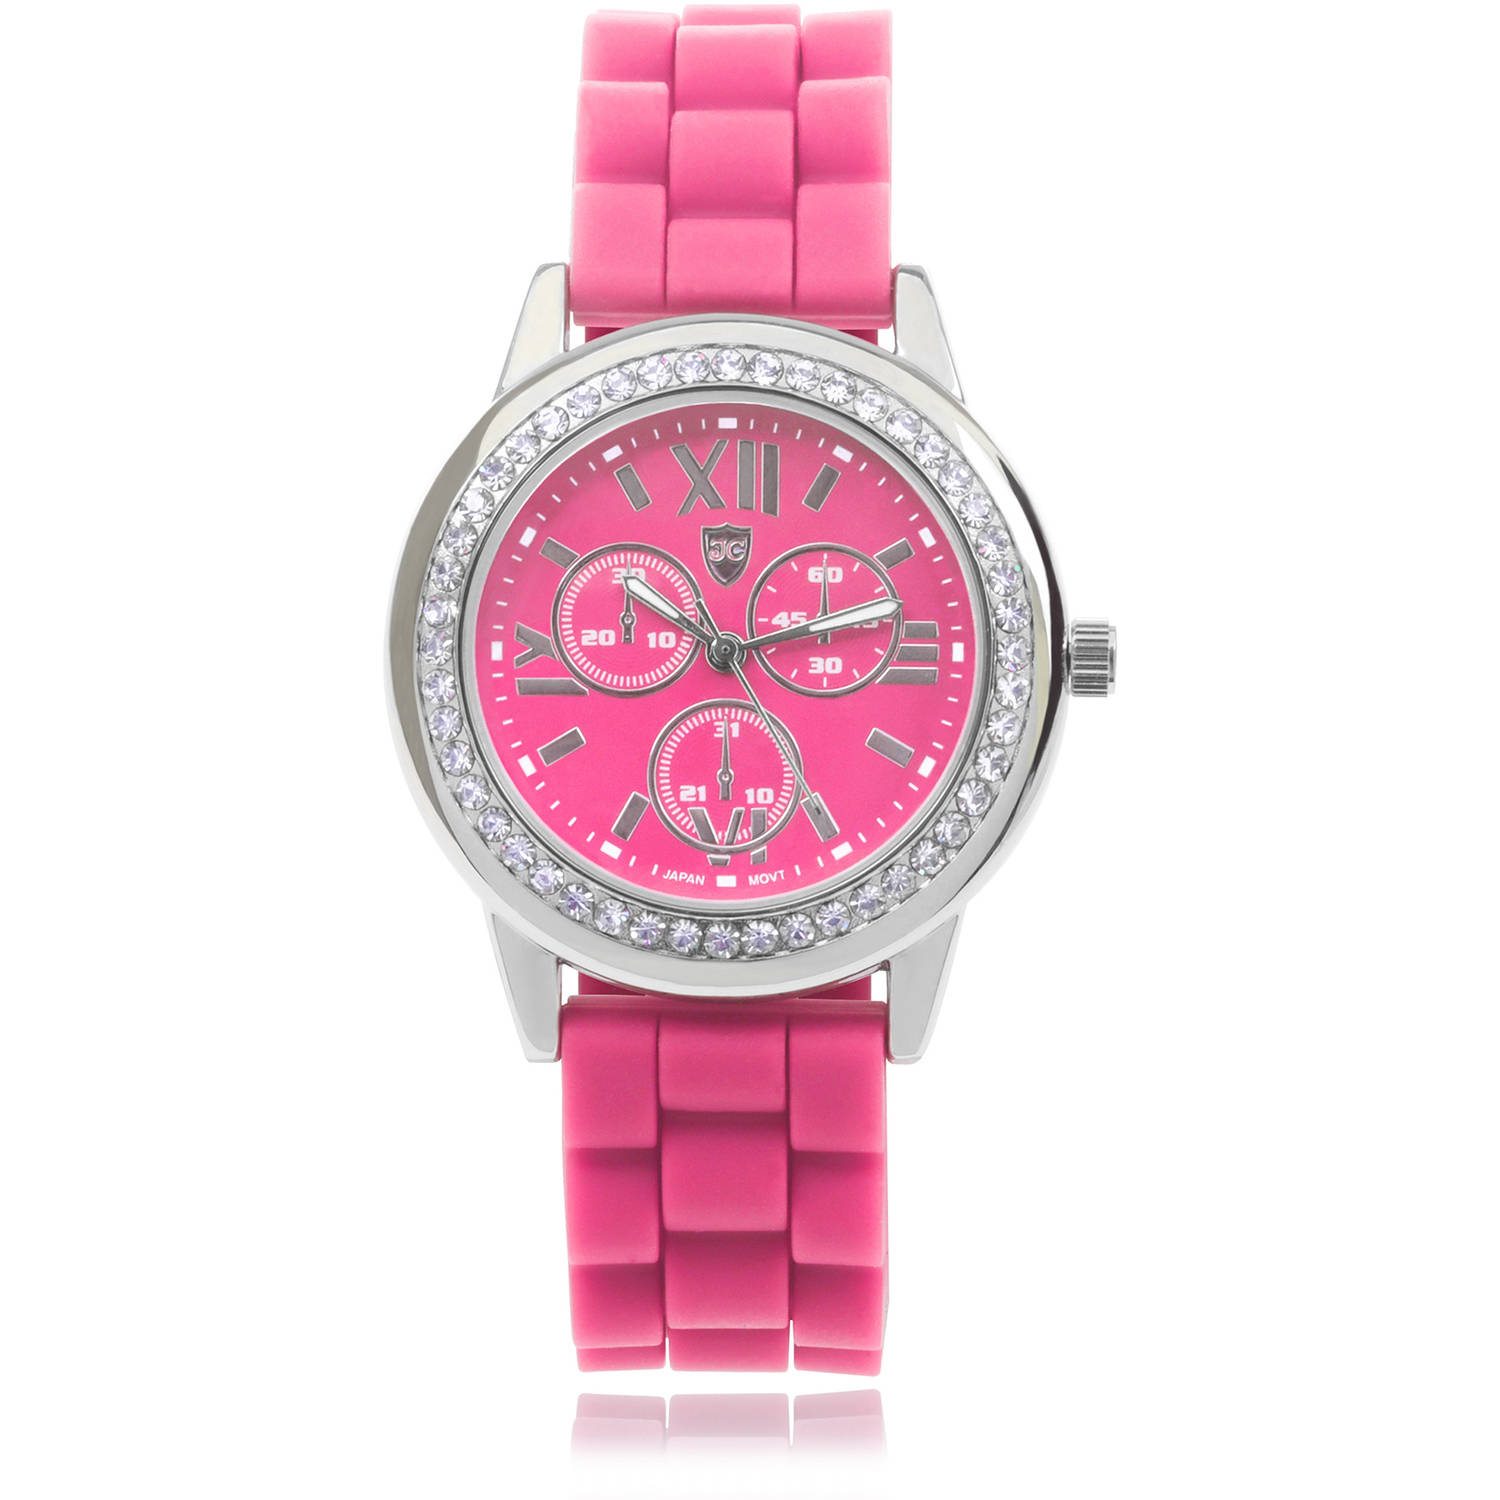 Journee Collection Women's Rhinestone Round Face Silicone Strap Fashion Watch, Pink